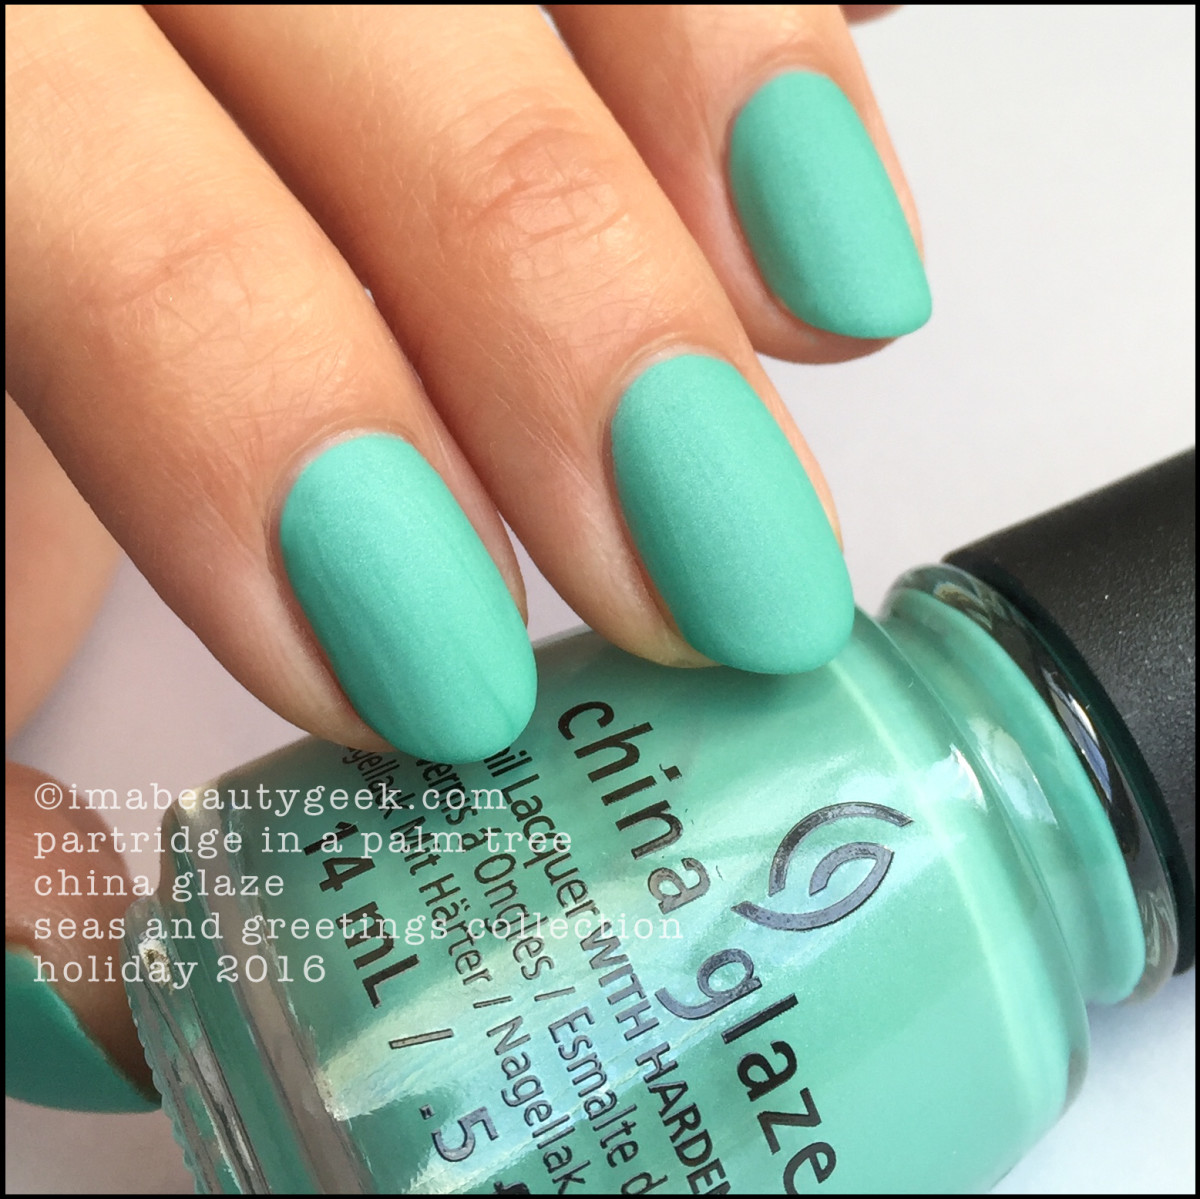 China Glaze Partridge in a Palm Tree_China Glaze Seas and Greetings Holiday 2016 Swatches Review